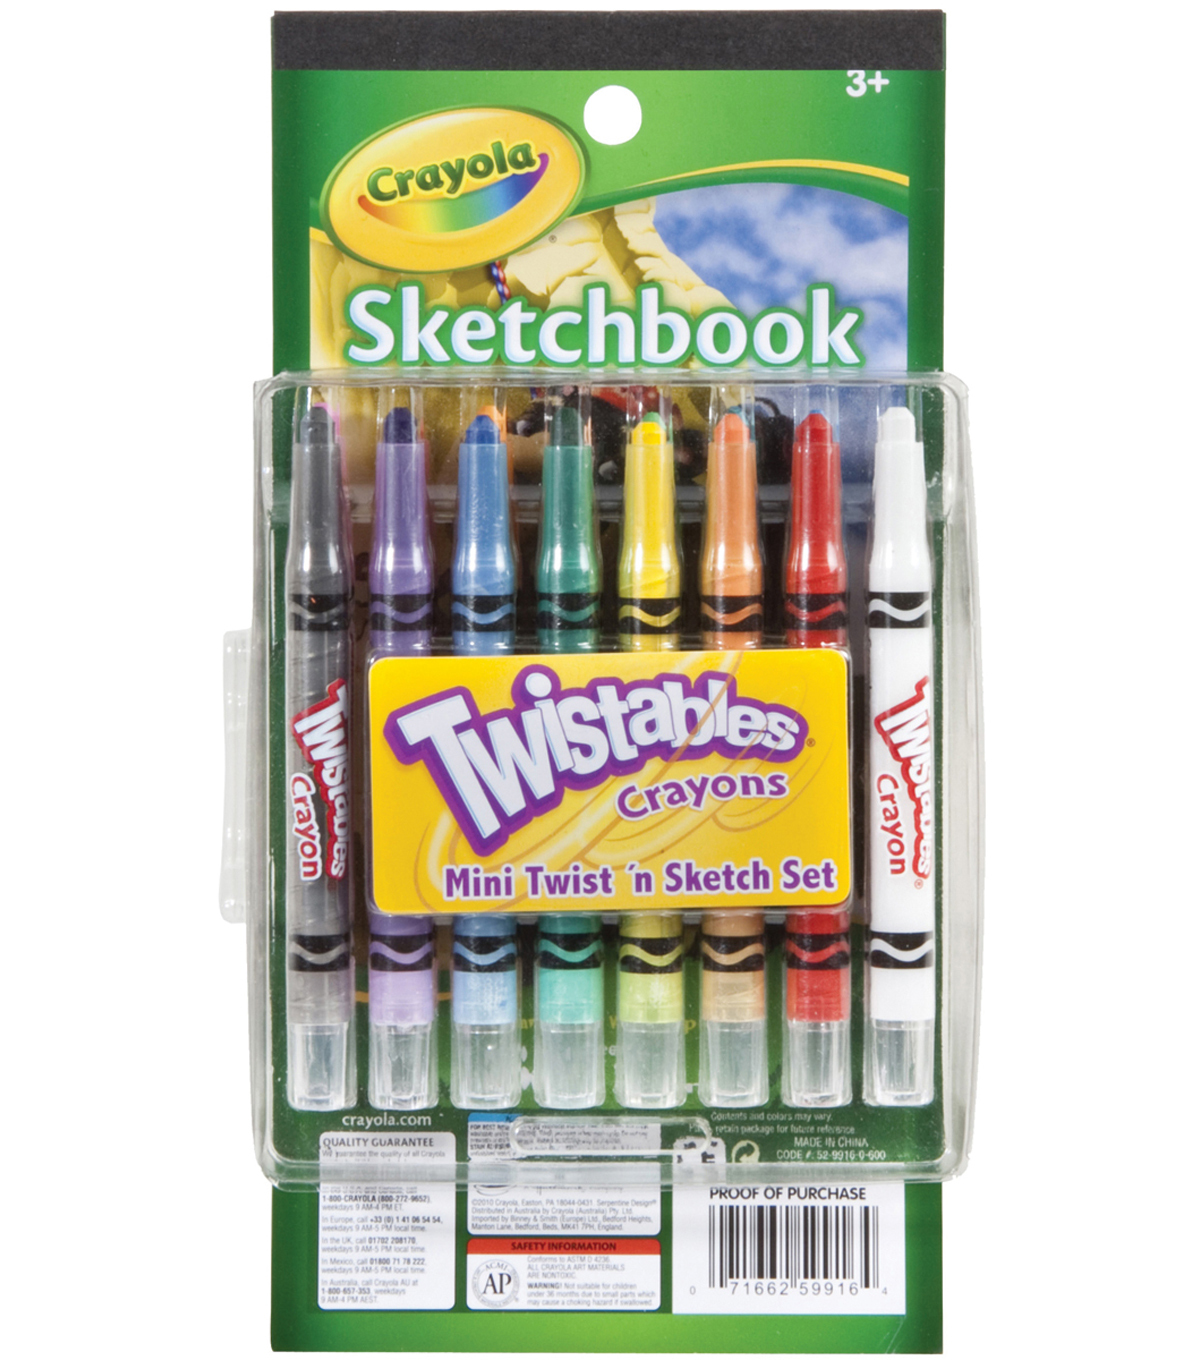 Crayola Twistable Mini Twist 'n Sketch Set